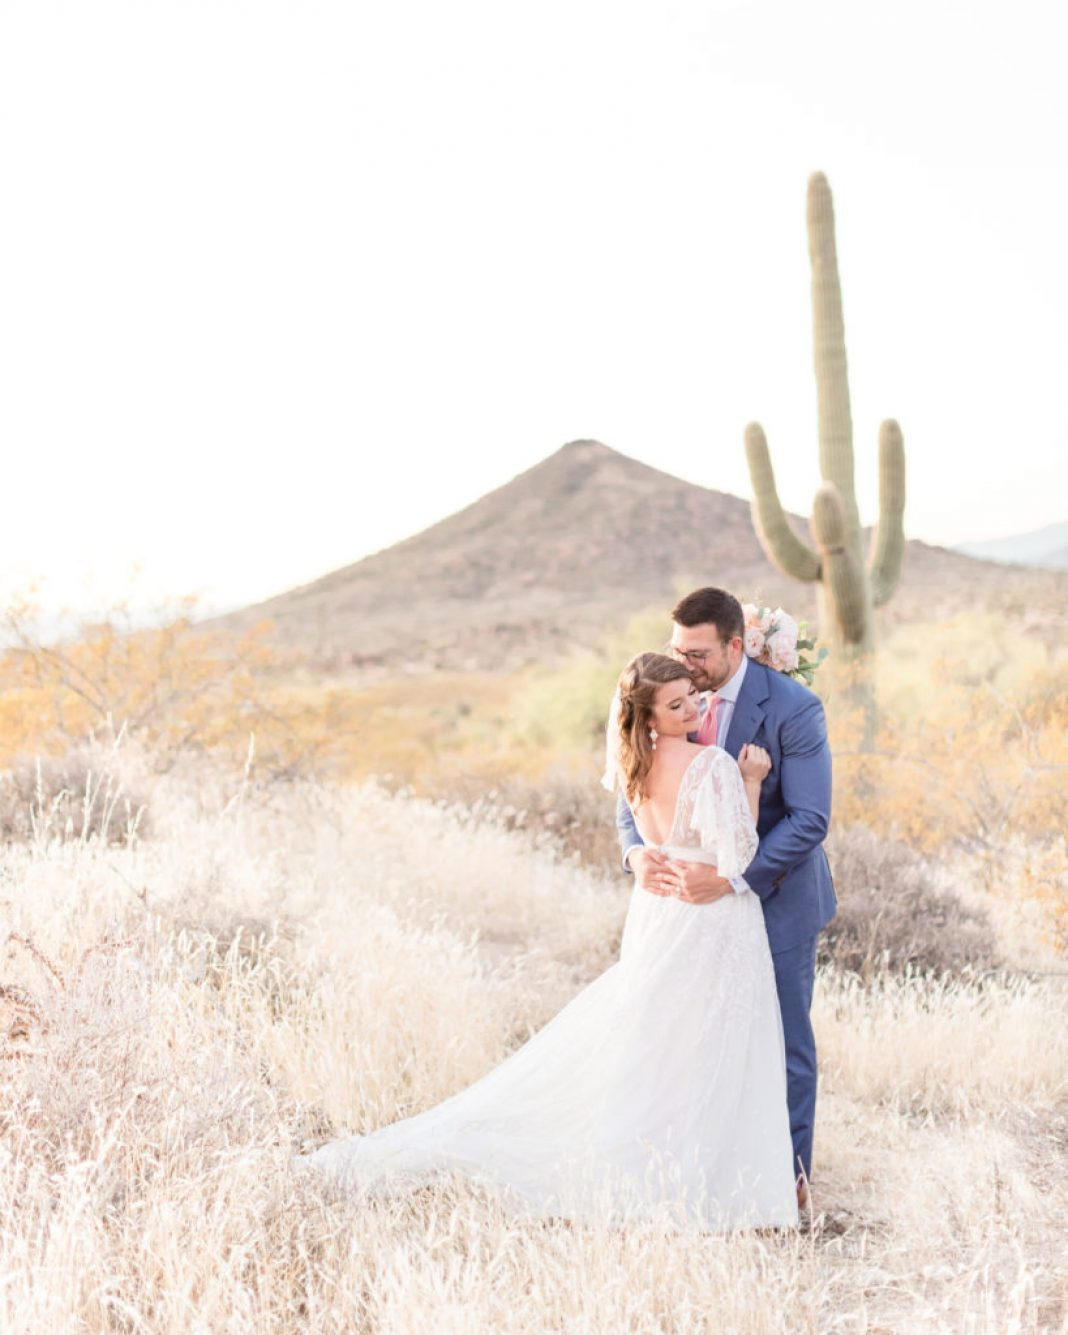 Arizona Destination Anniversary Session - Amy & Jordan | Blog